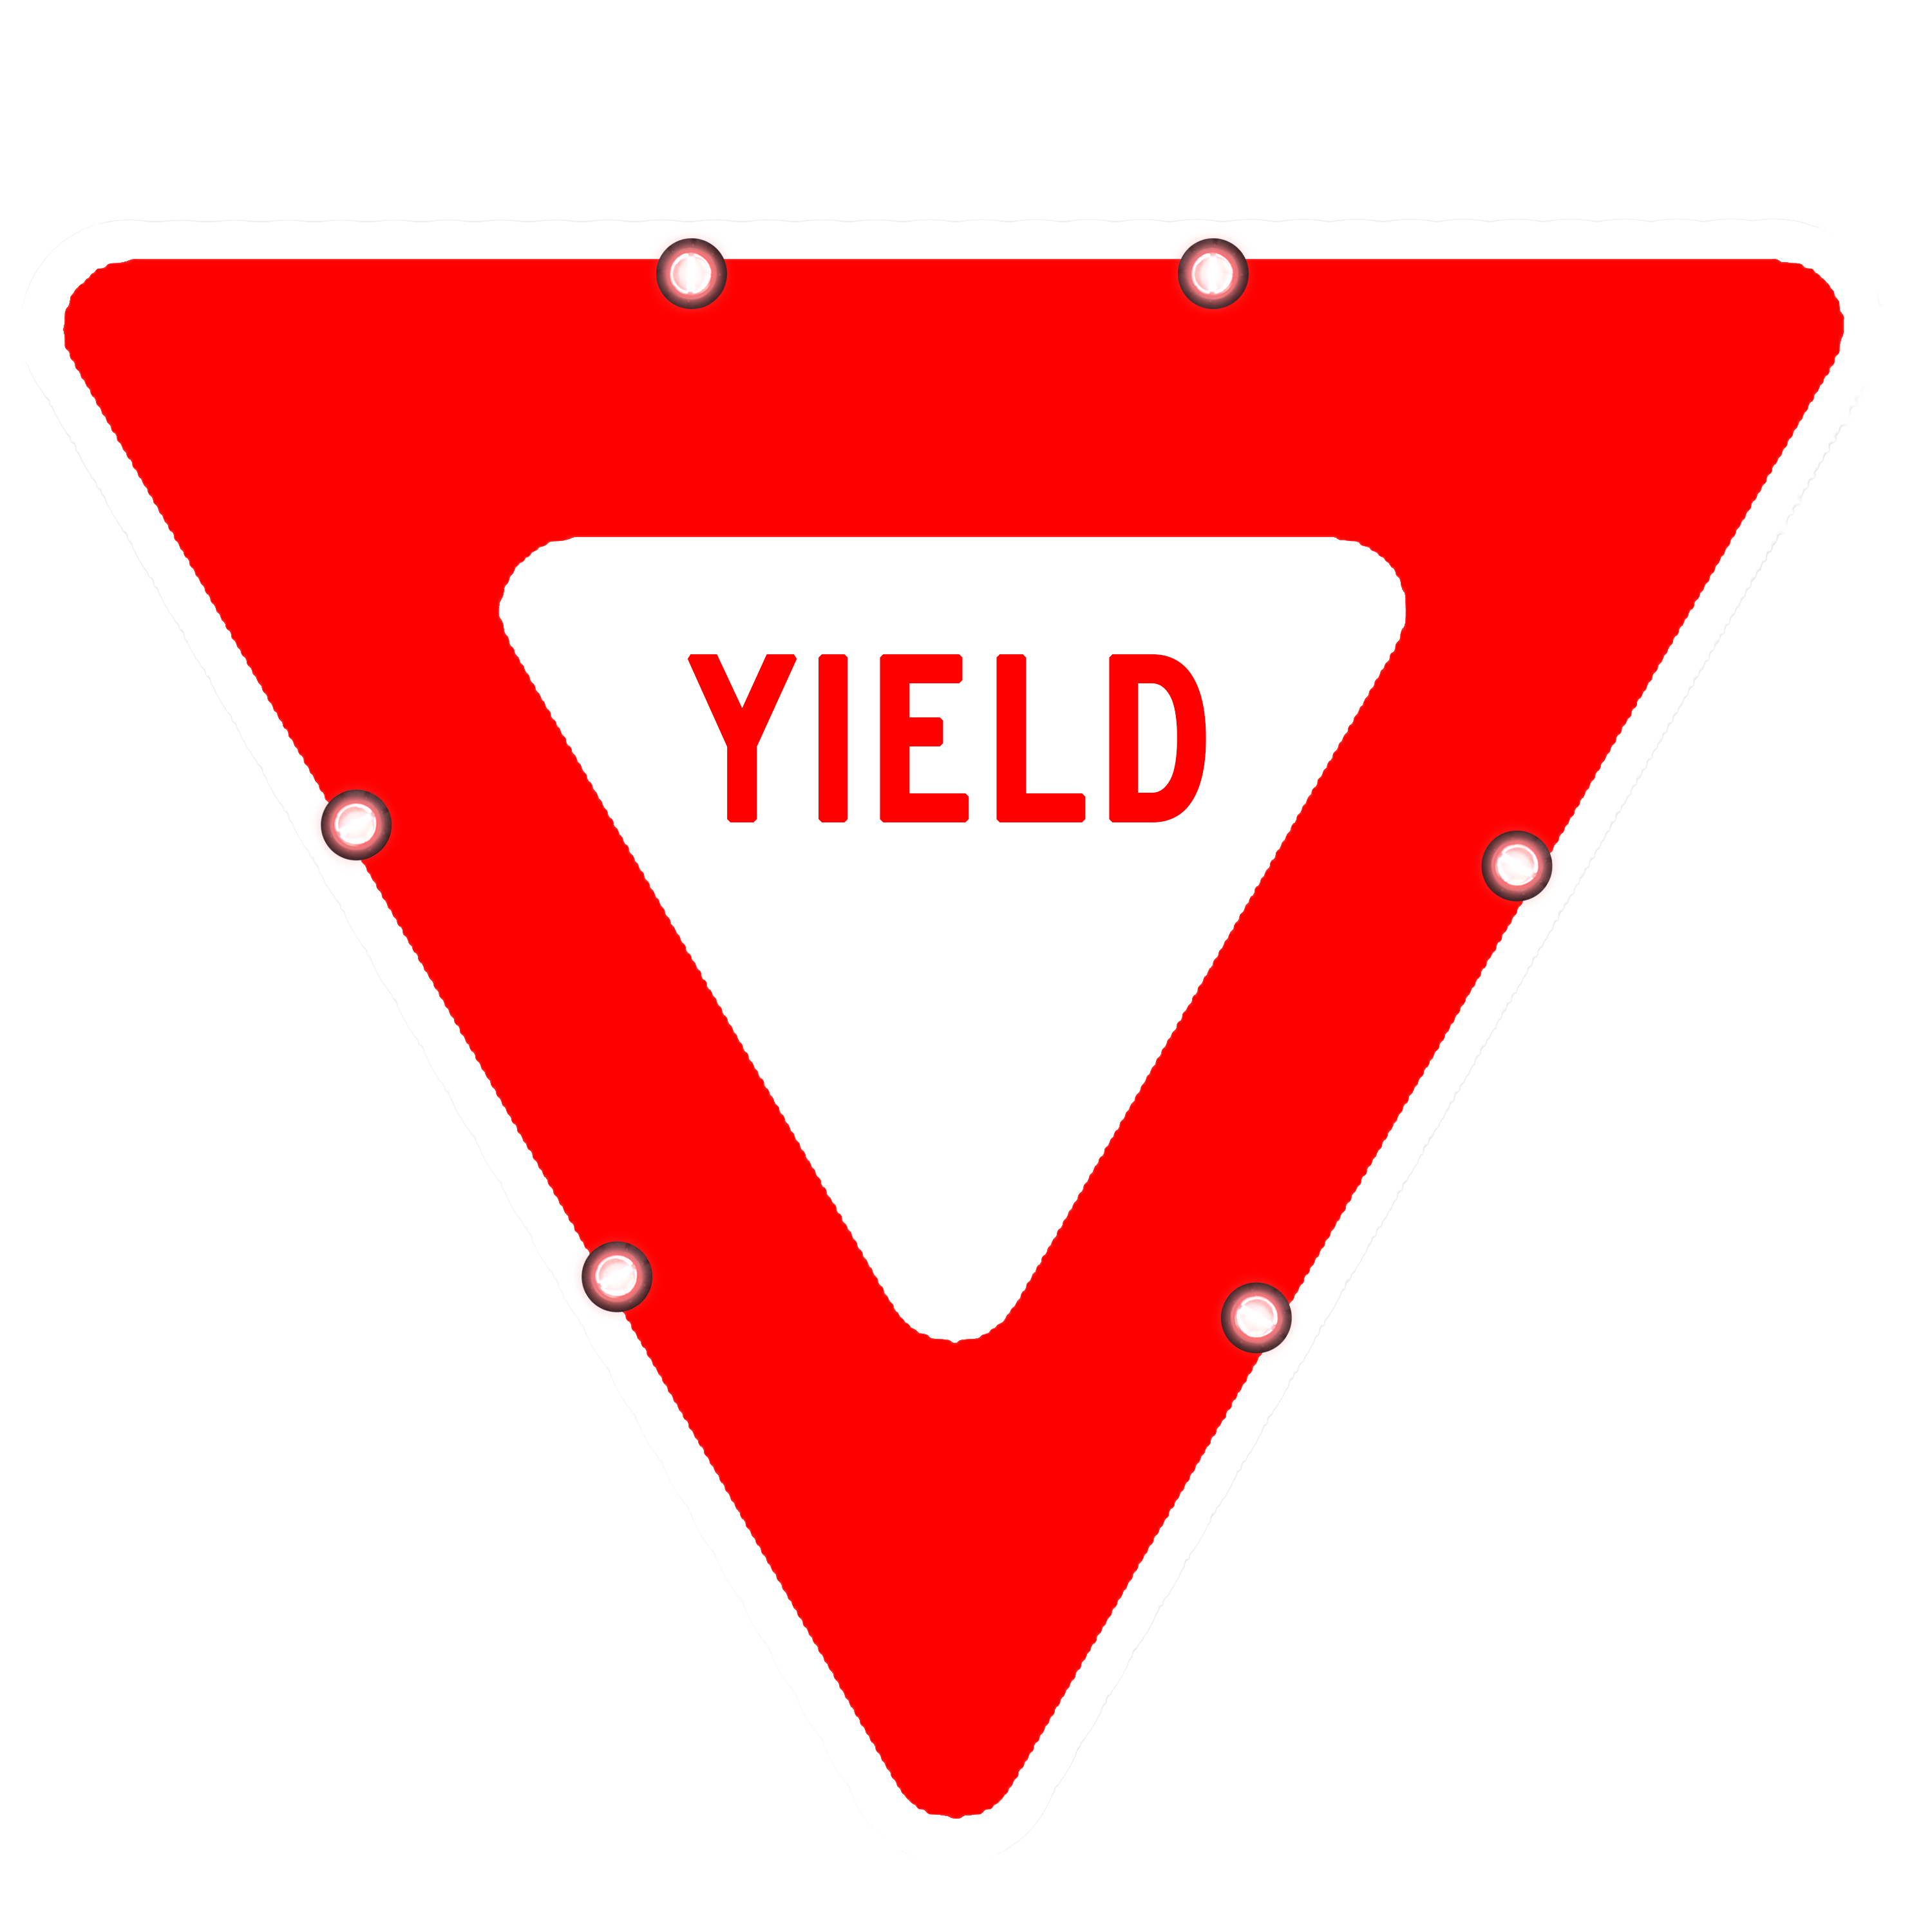 Image logo for Lighted Roadway Signs - YIELD Sign